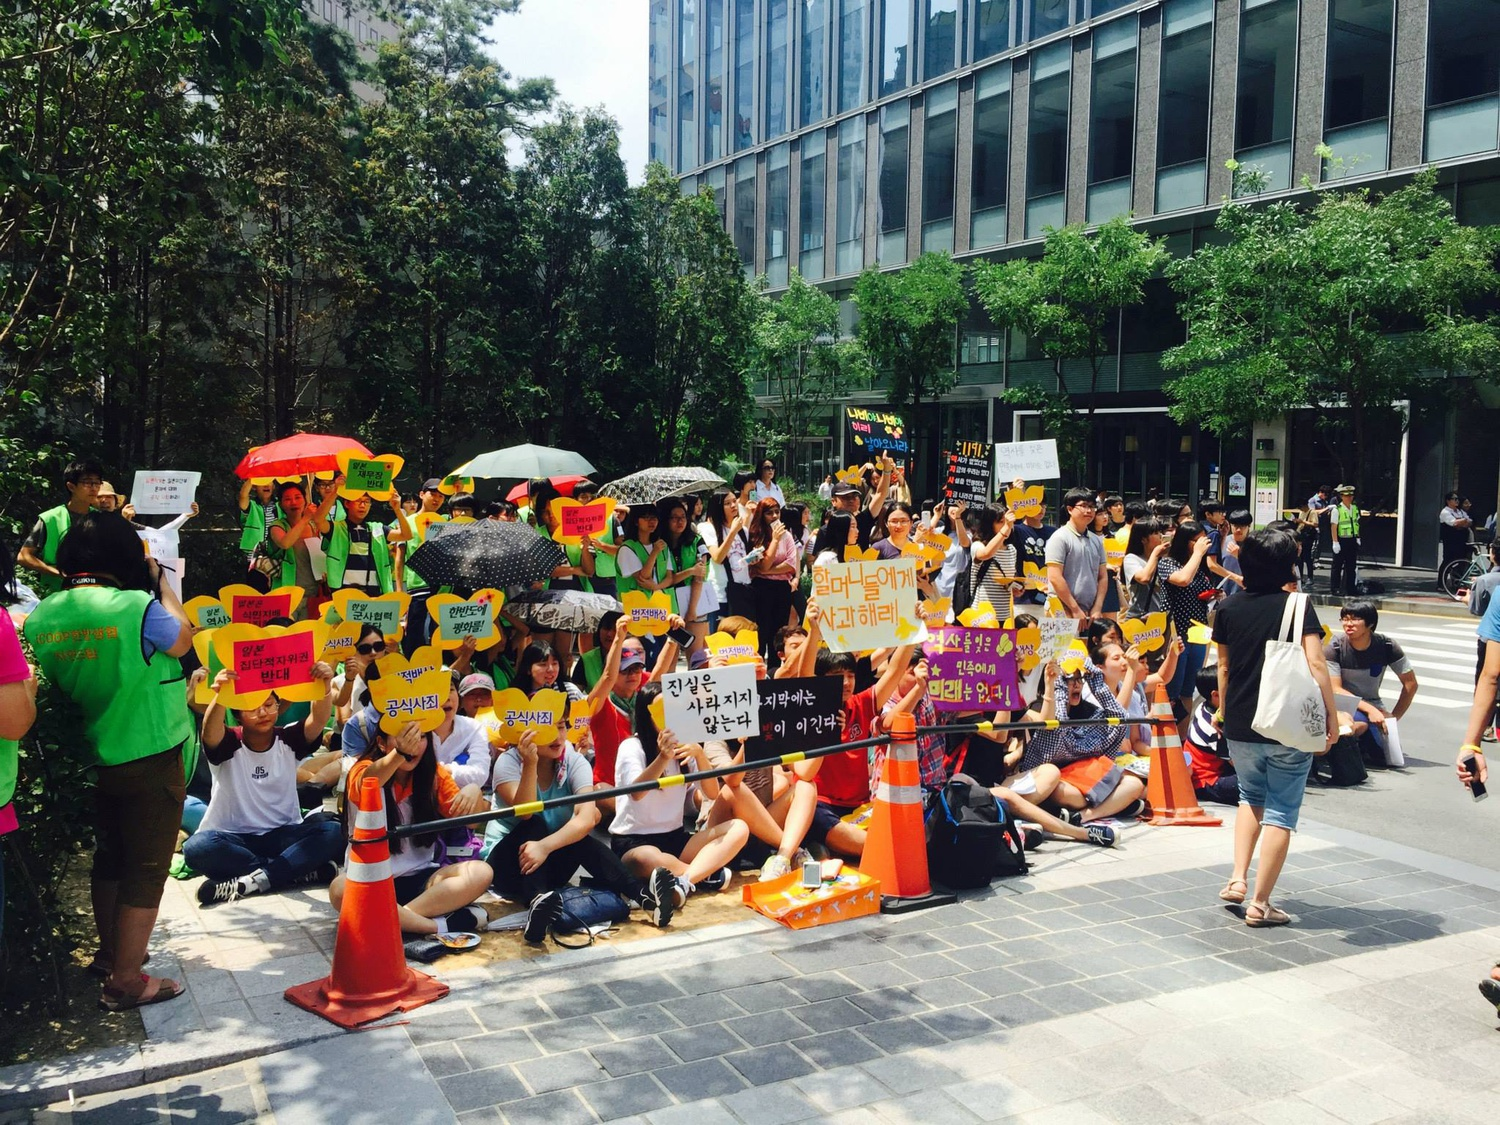 Every Wednesday since 1992, South Koreans have held a protest in front of the Japanese embassy in the capital, Seoul, to demand the Japanese government apologize to and compensate victims of sexual slavery in Imperial Japan, known as comfort women.